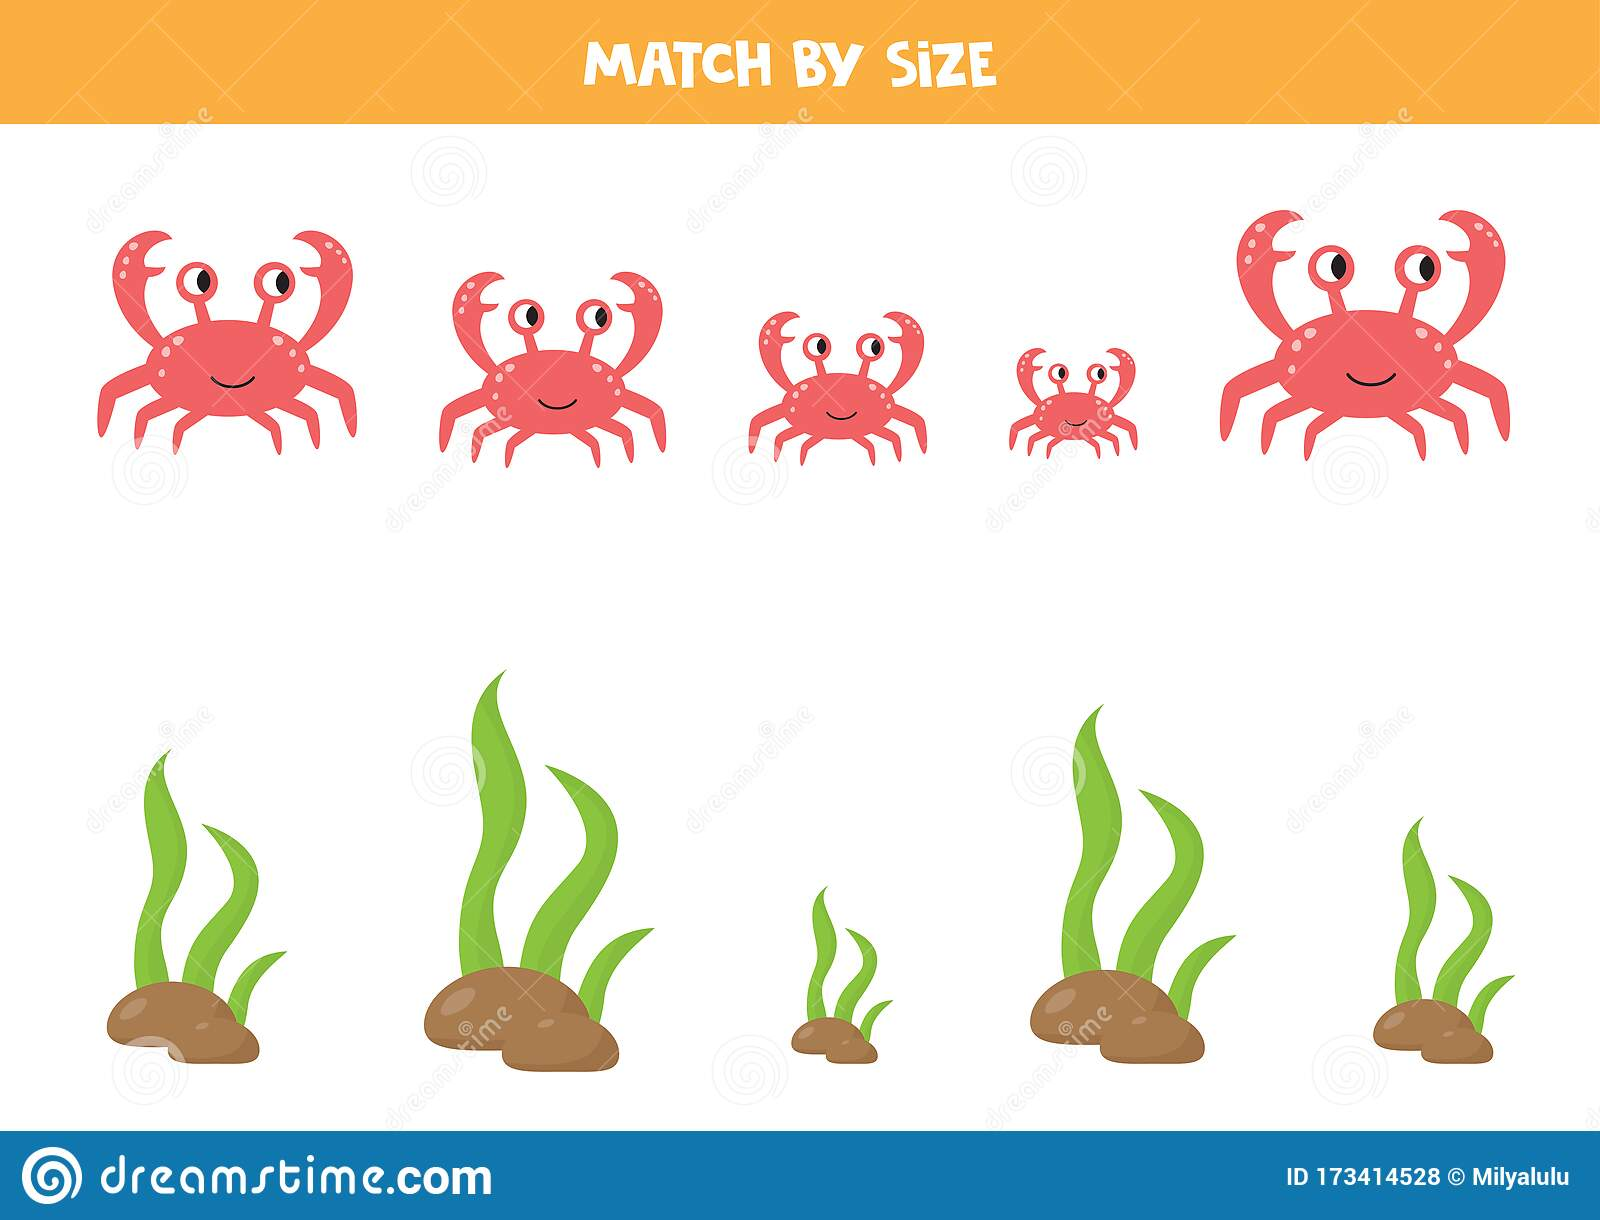 Matching Game For Kids Sea Animals Sort By Size Crab